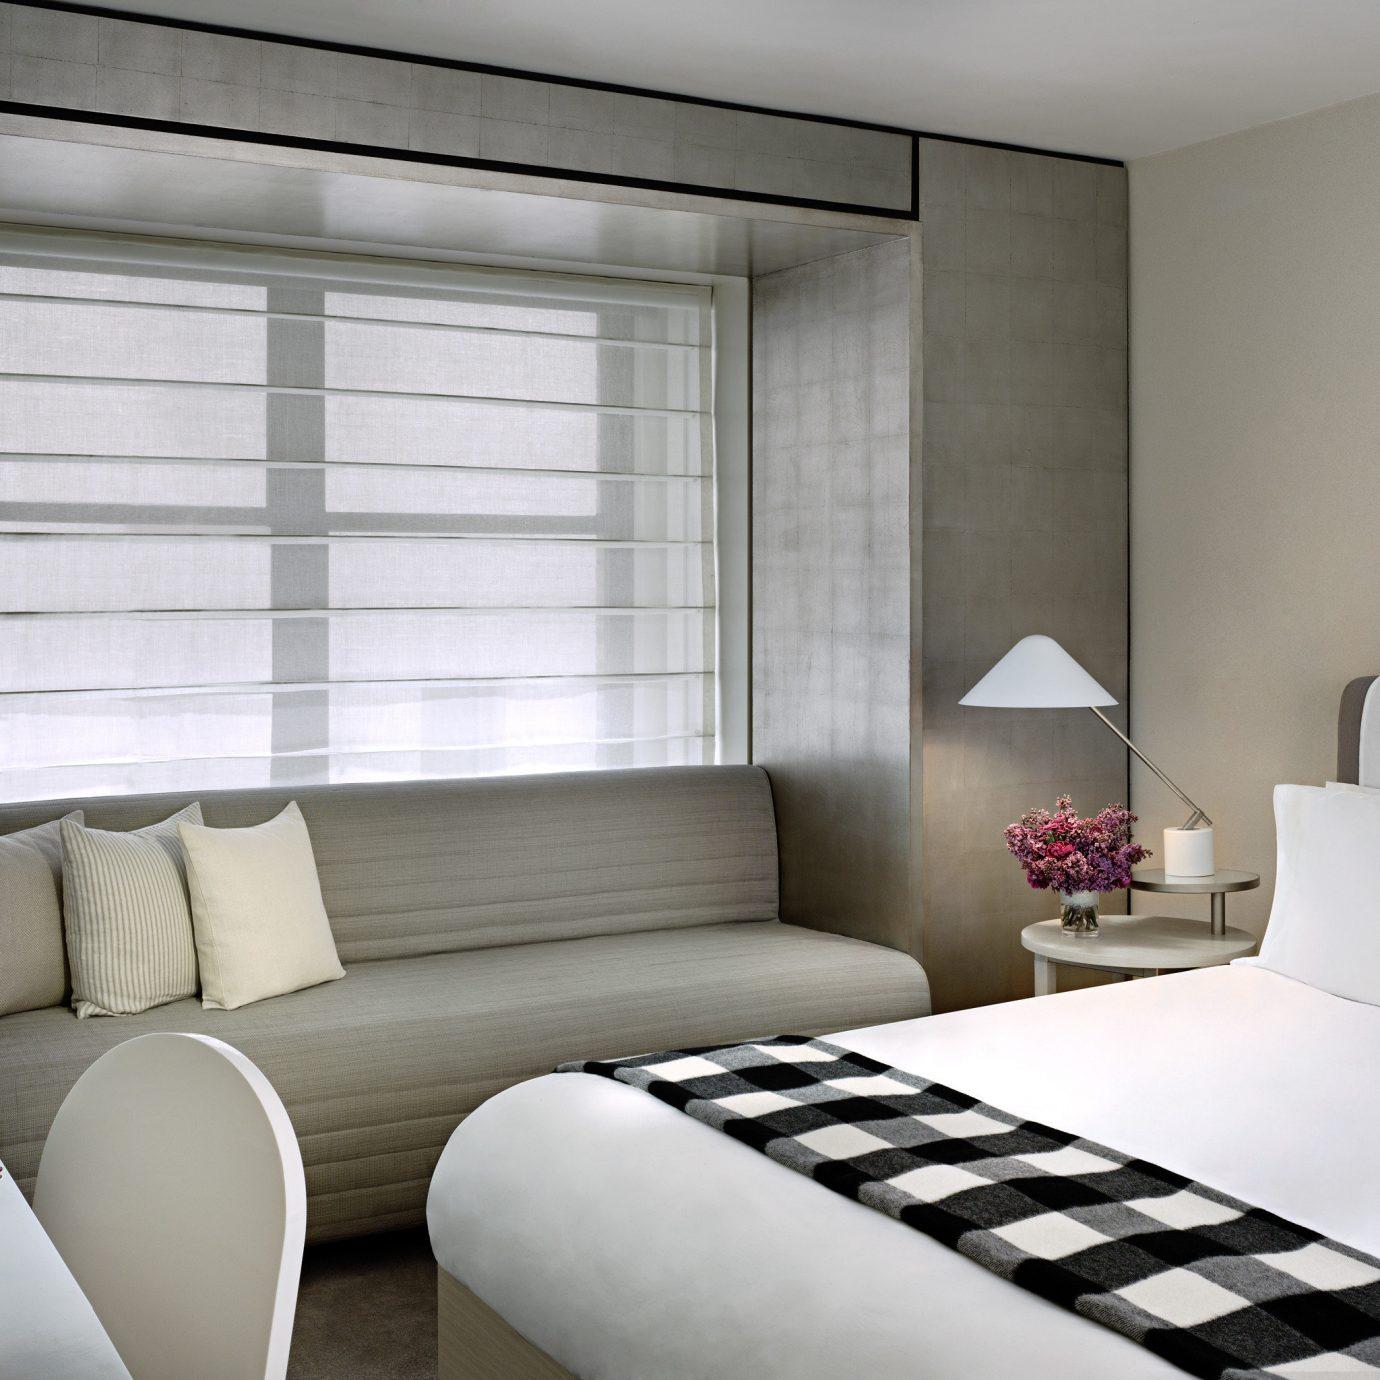 Bedroom Business City Modern sofa white living room curtain window treatment bed sheet textile lamp